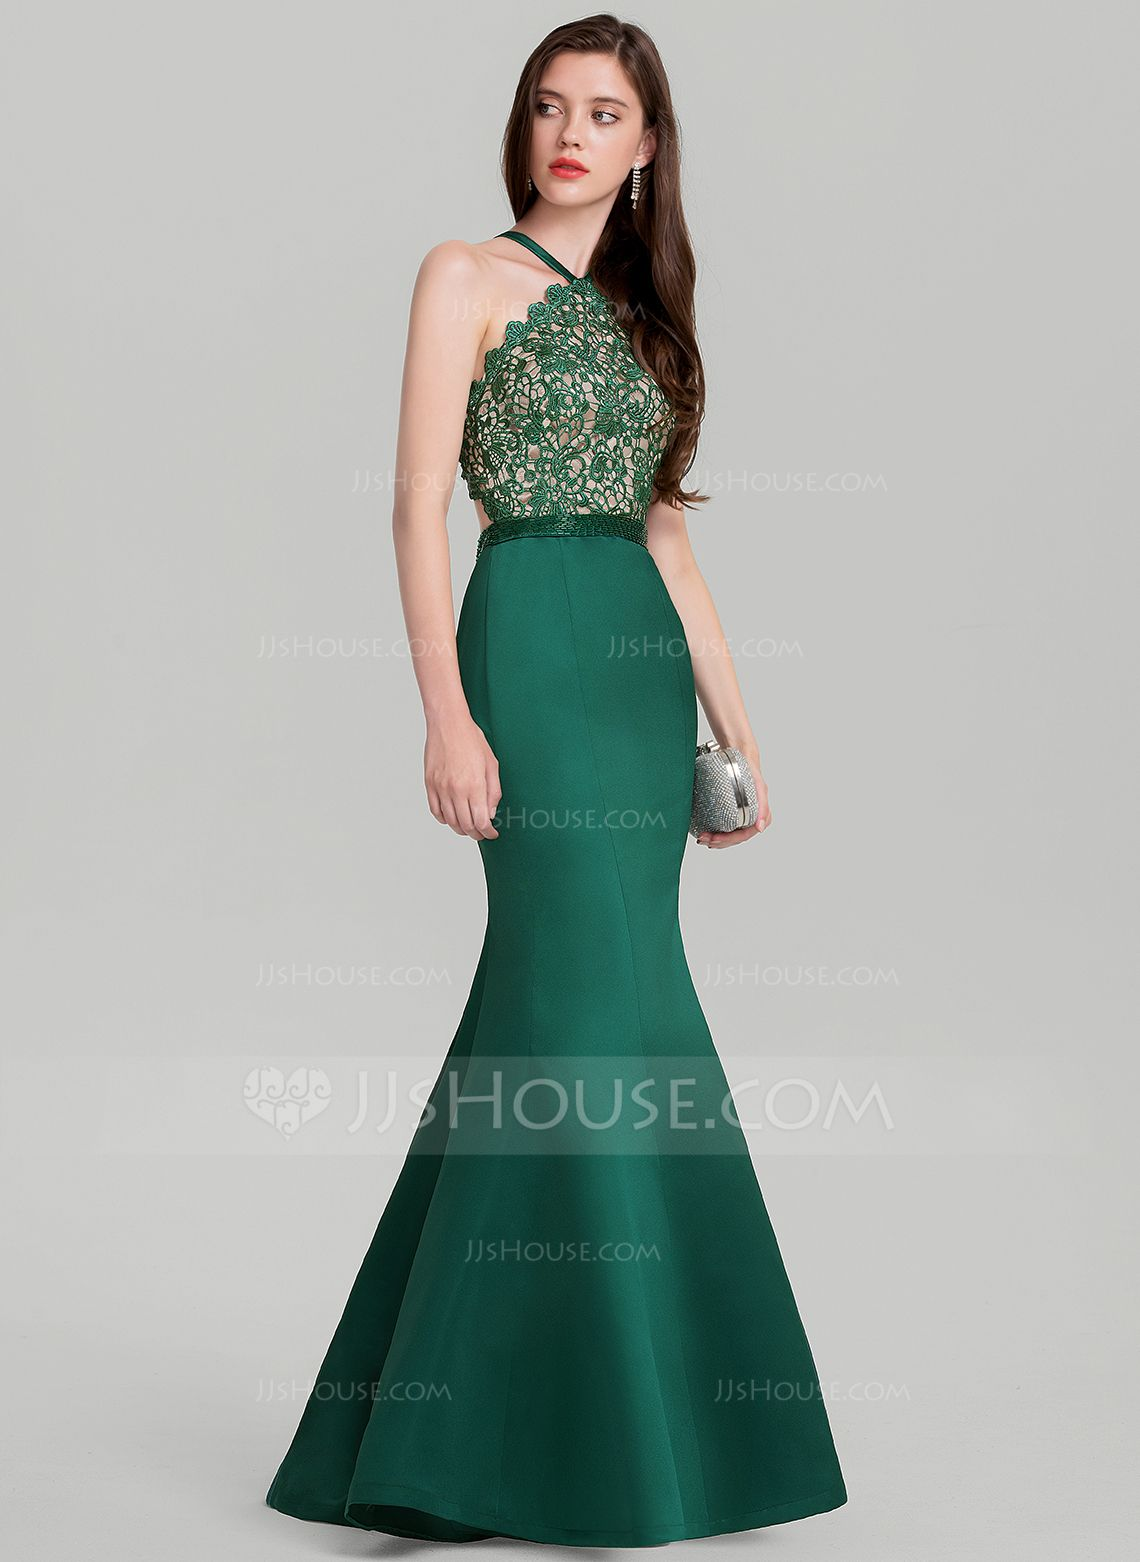 Fashion dress for wedding party  TrumpetMermaid Vneck FloorLength Satin Evening Dress With Beading